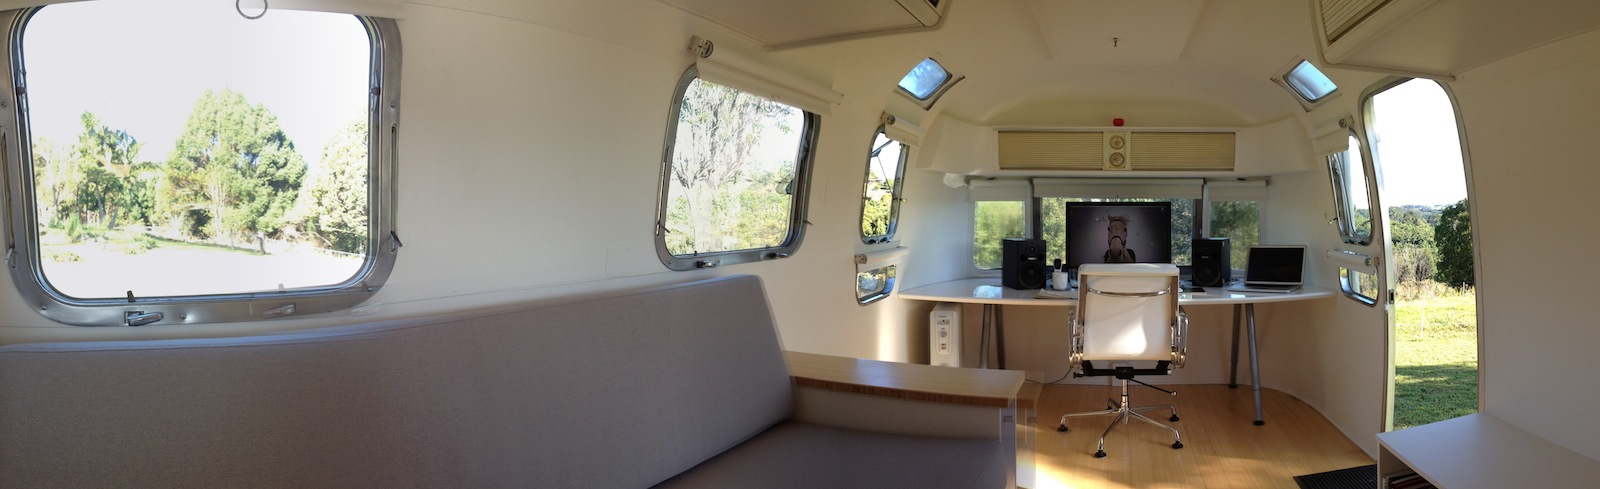 Click image for larger version  Name:1974AirstreamTradewindForward.jpg Views:126 Size:172.6 KB ID:167336